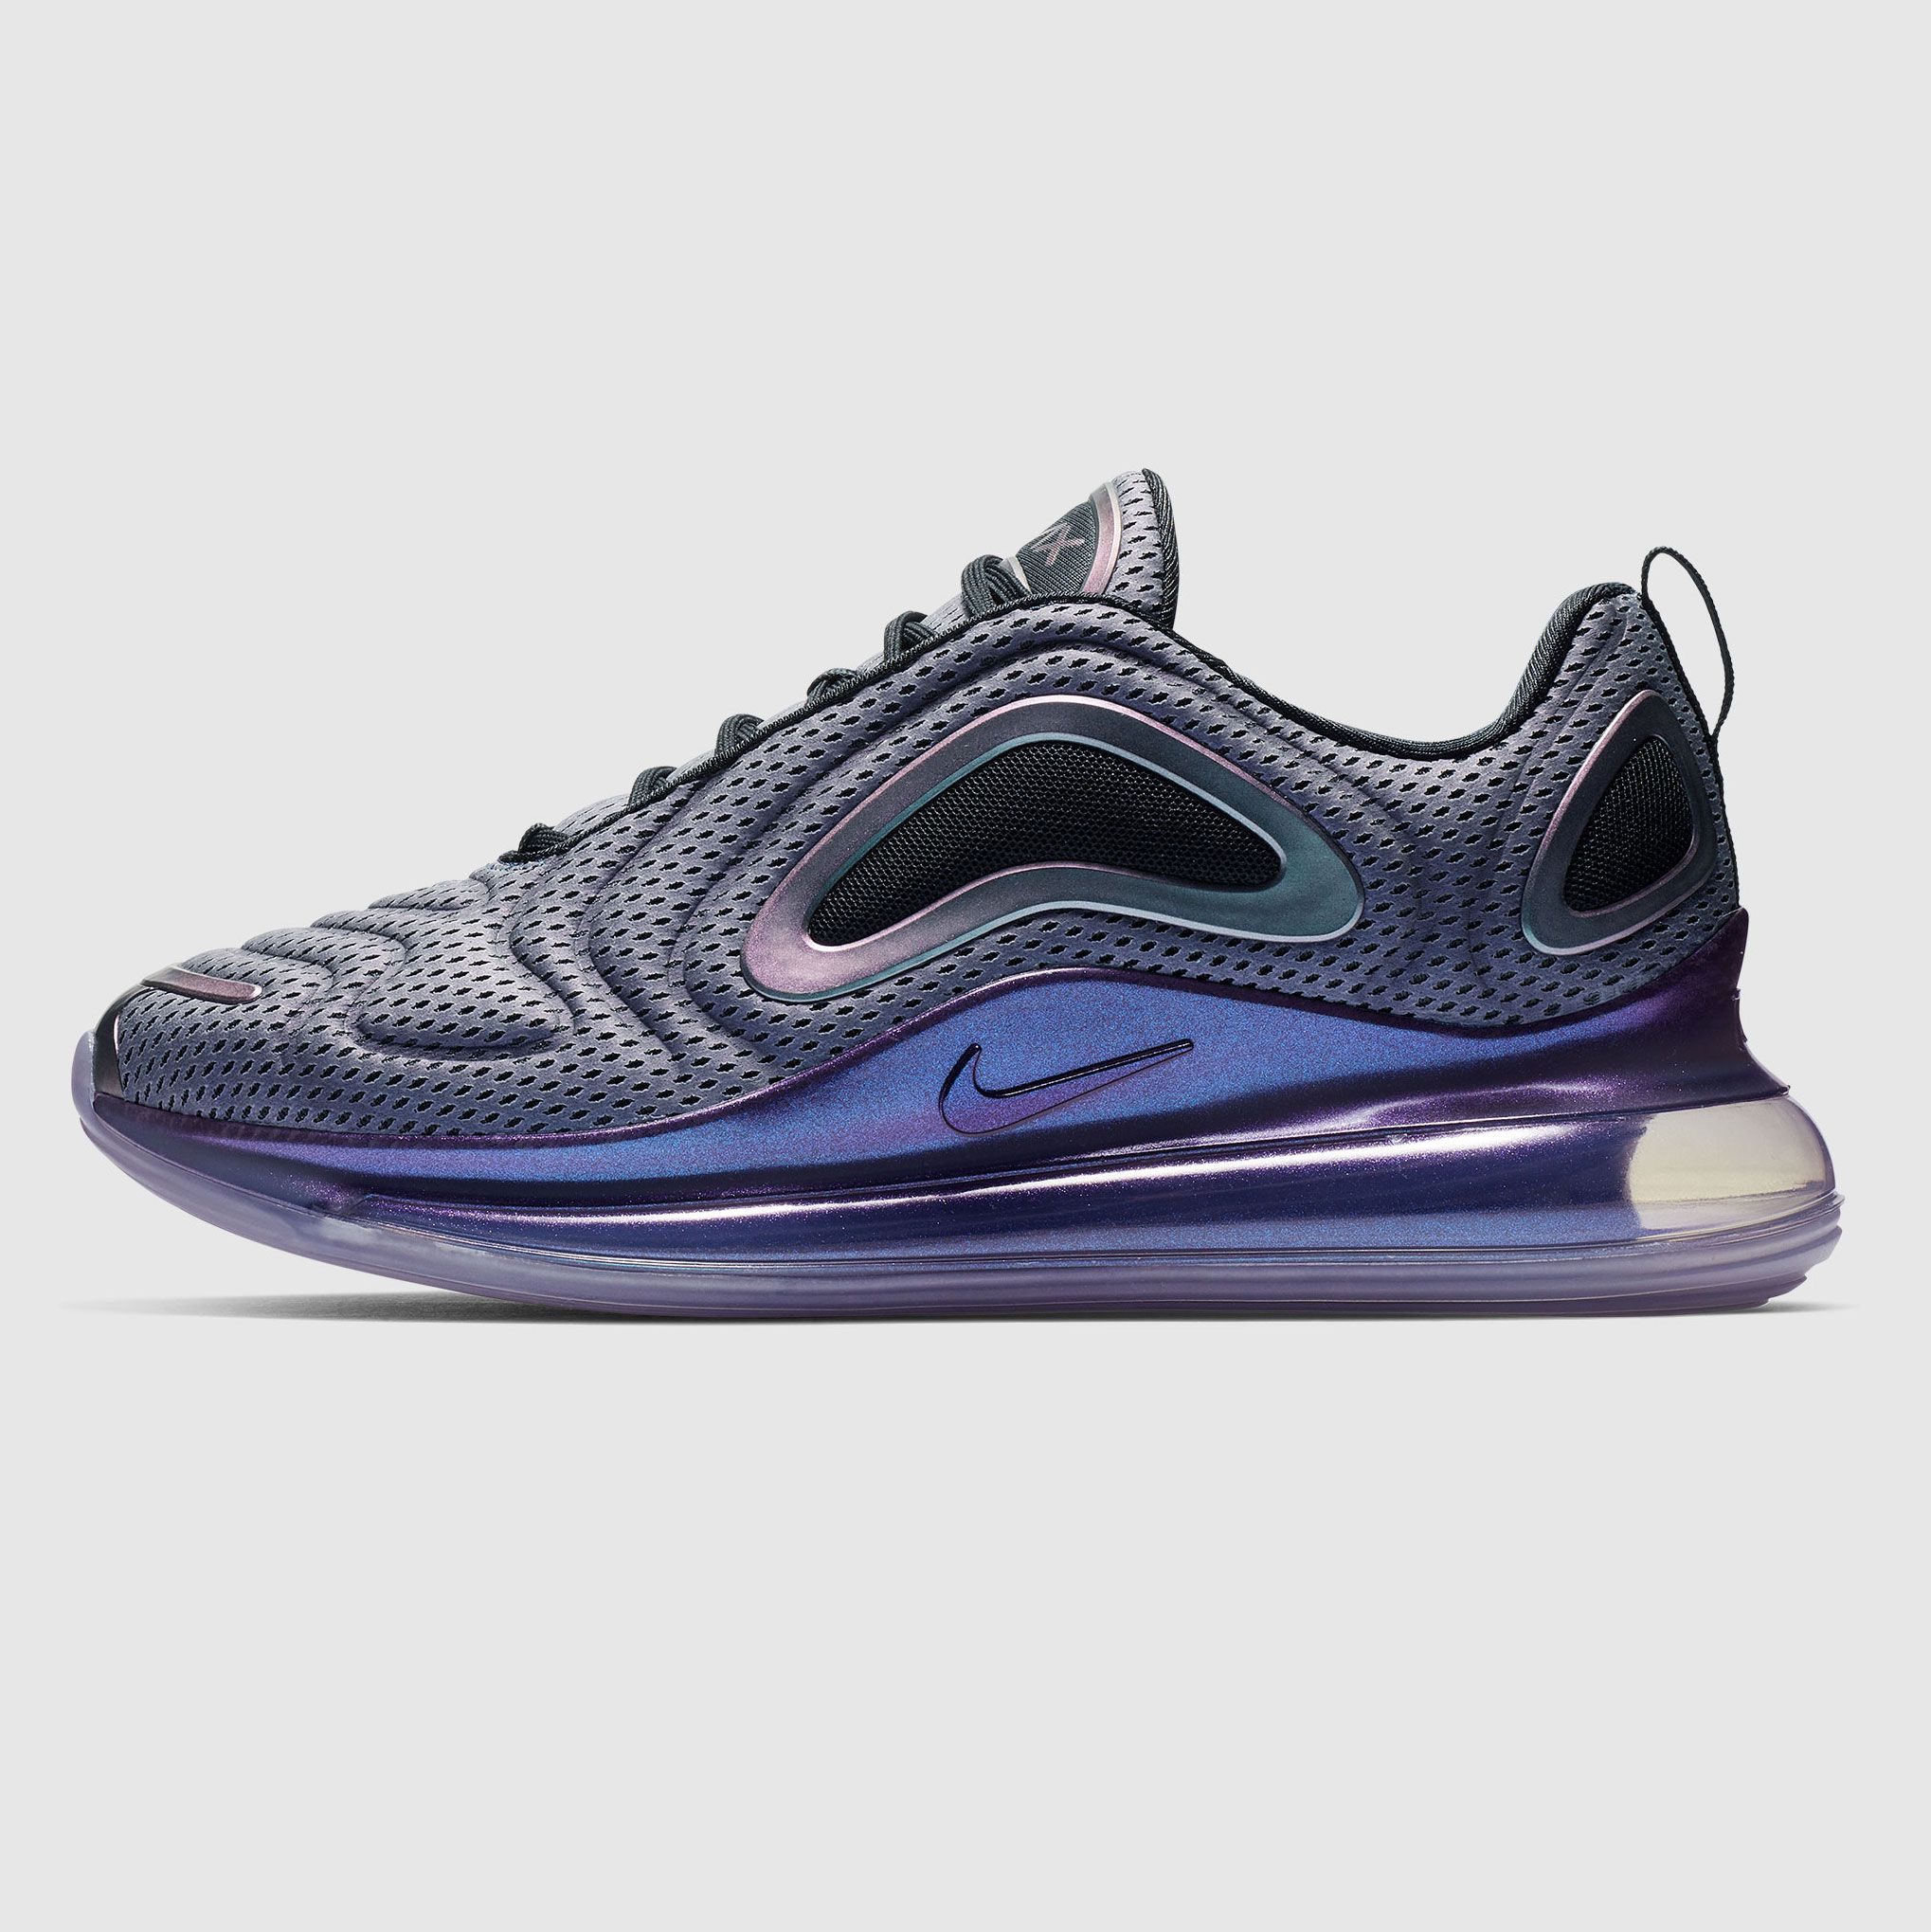 brand new f2797 1be2e Nike's Air Max 720 Just Got Its Full, Official Reveal - Air Max 720 ...